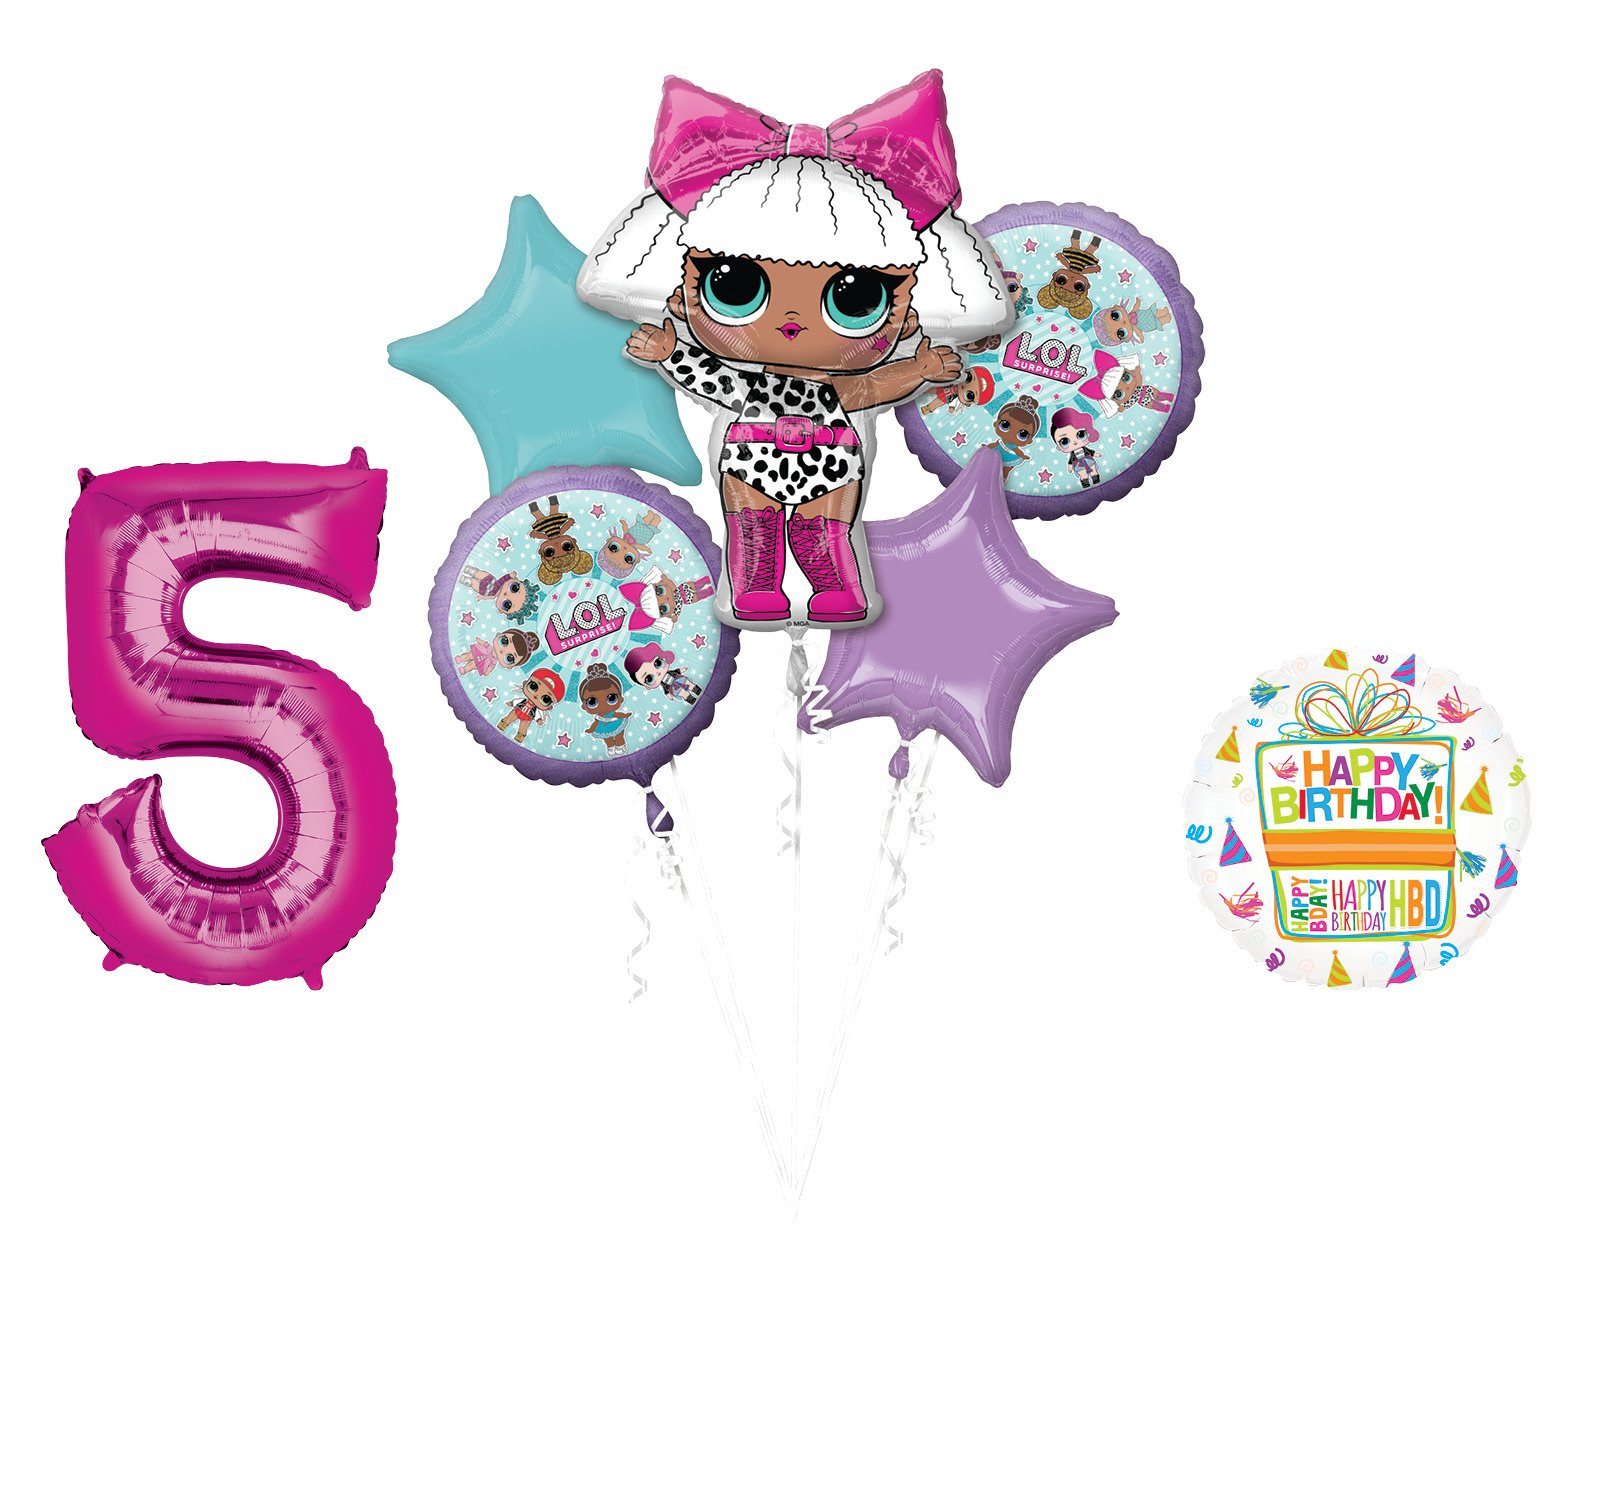 LOL Party Supplies 5th Birthday Balloon Bouquet Decorations by LOL Surprise